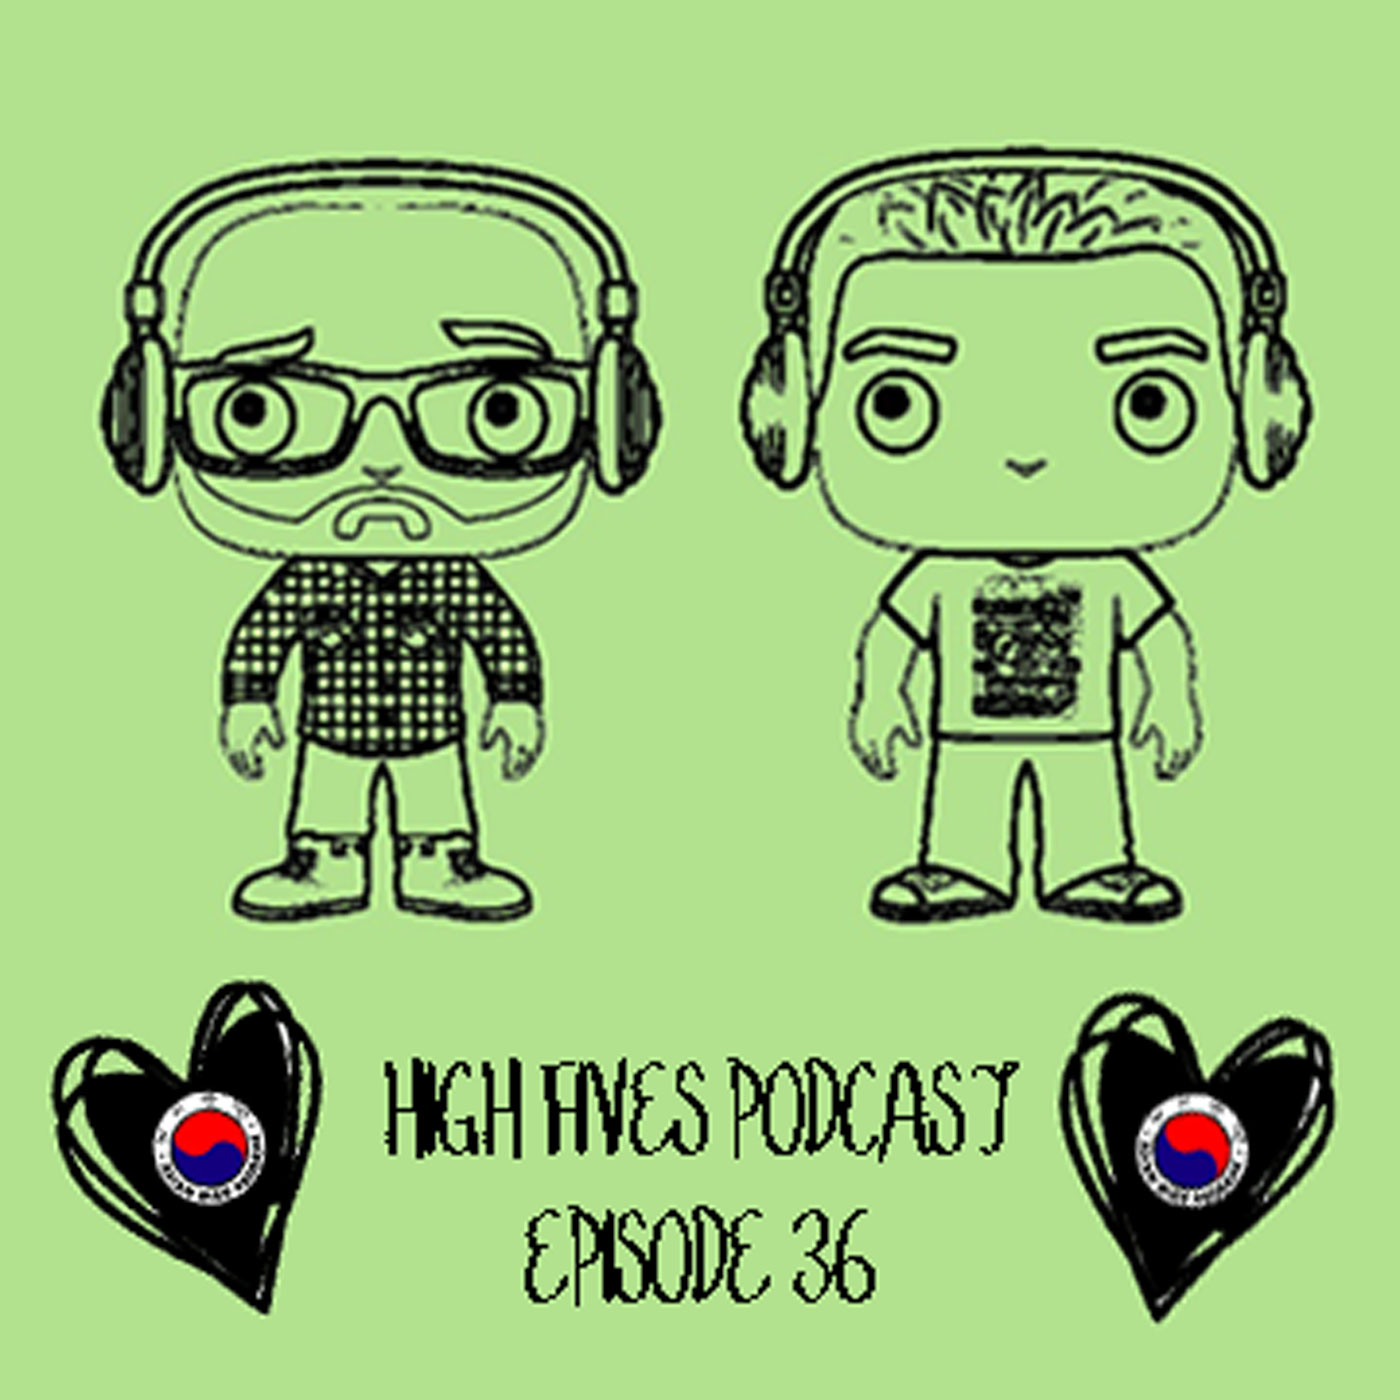 Episode 36 - A Tribute To Asian Man Records